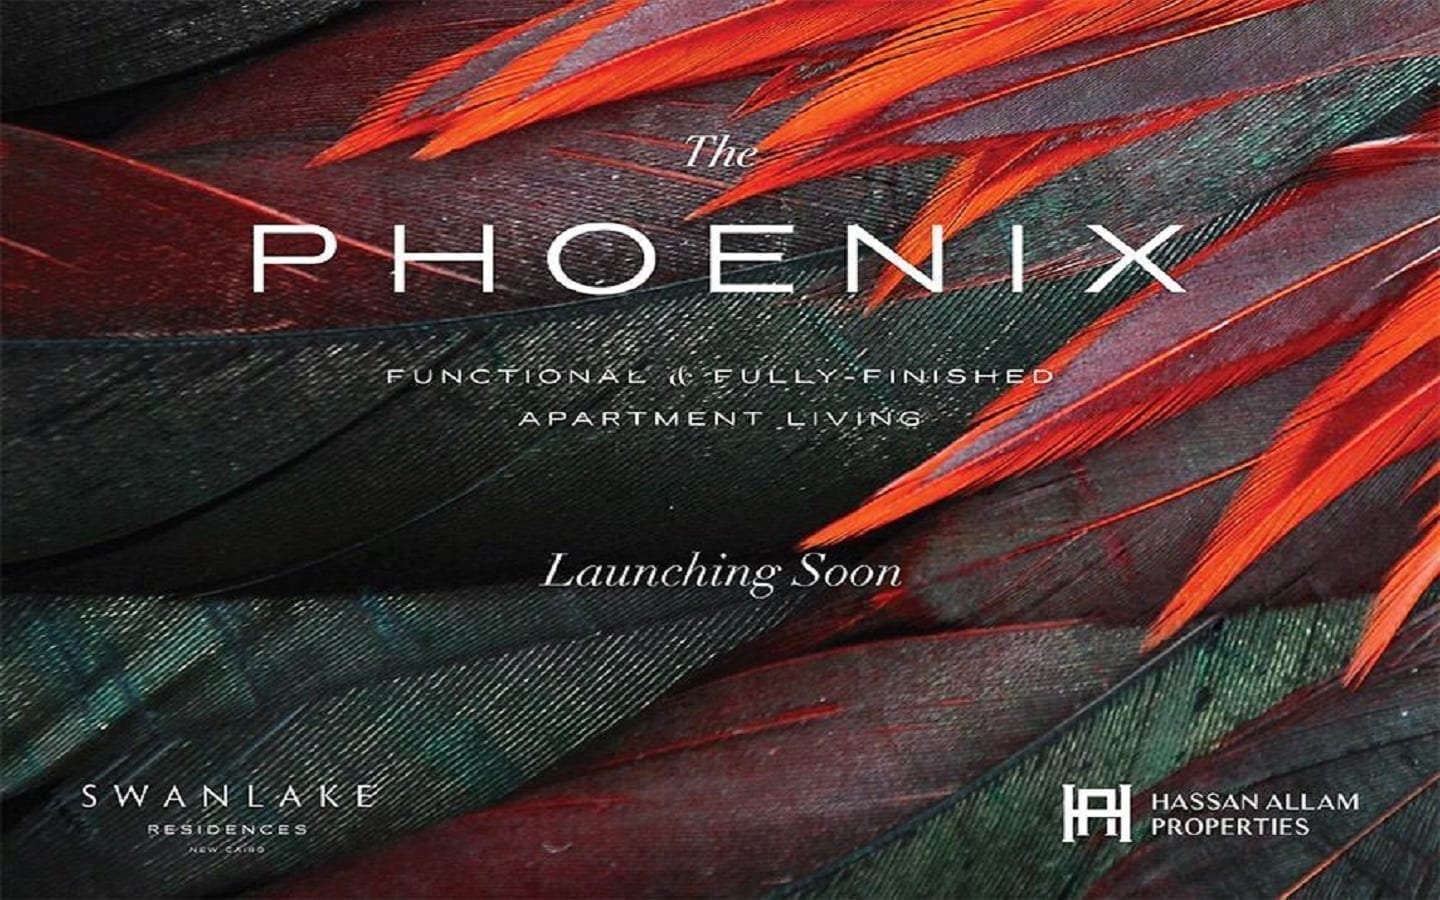 The Phoenix Swan Lake Residences New Cairo Apartments Hassan Allam Properties - 8 Gates Real Estate Egypt